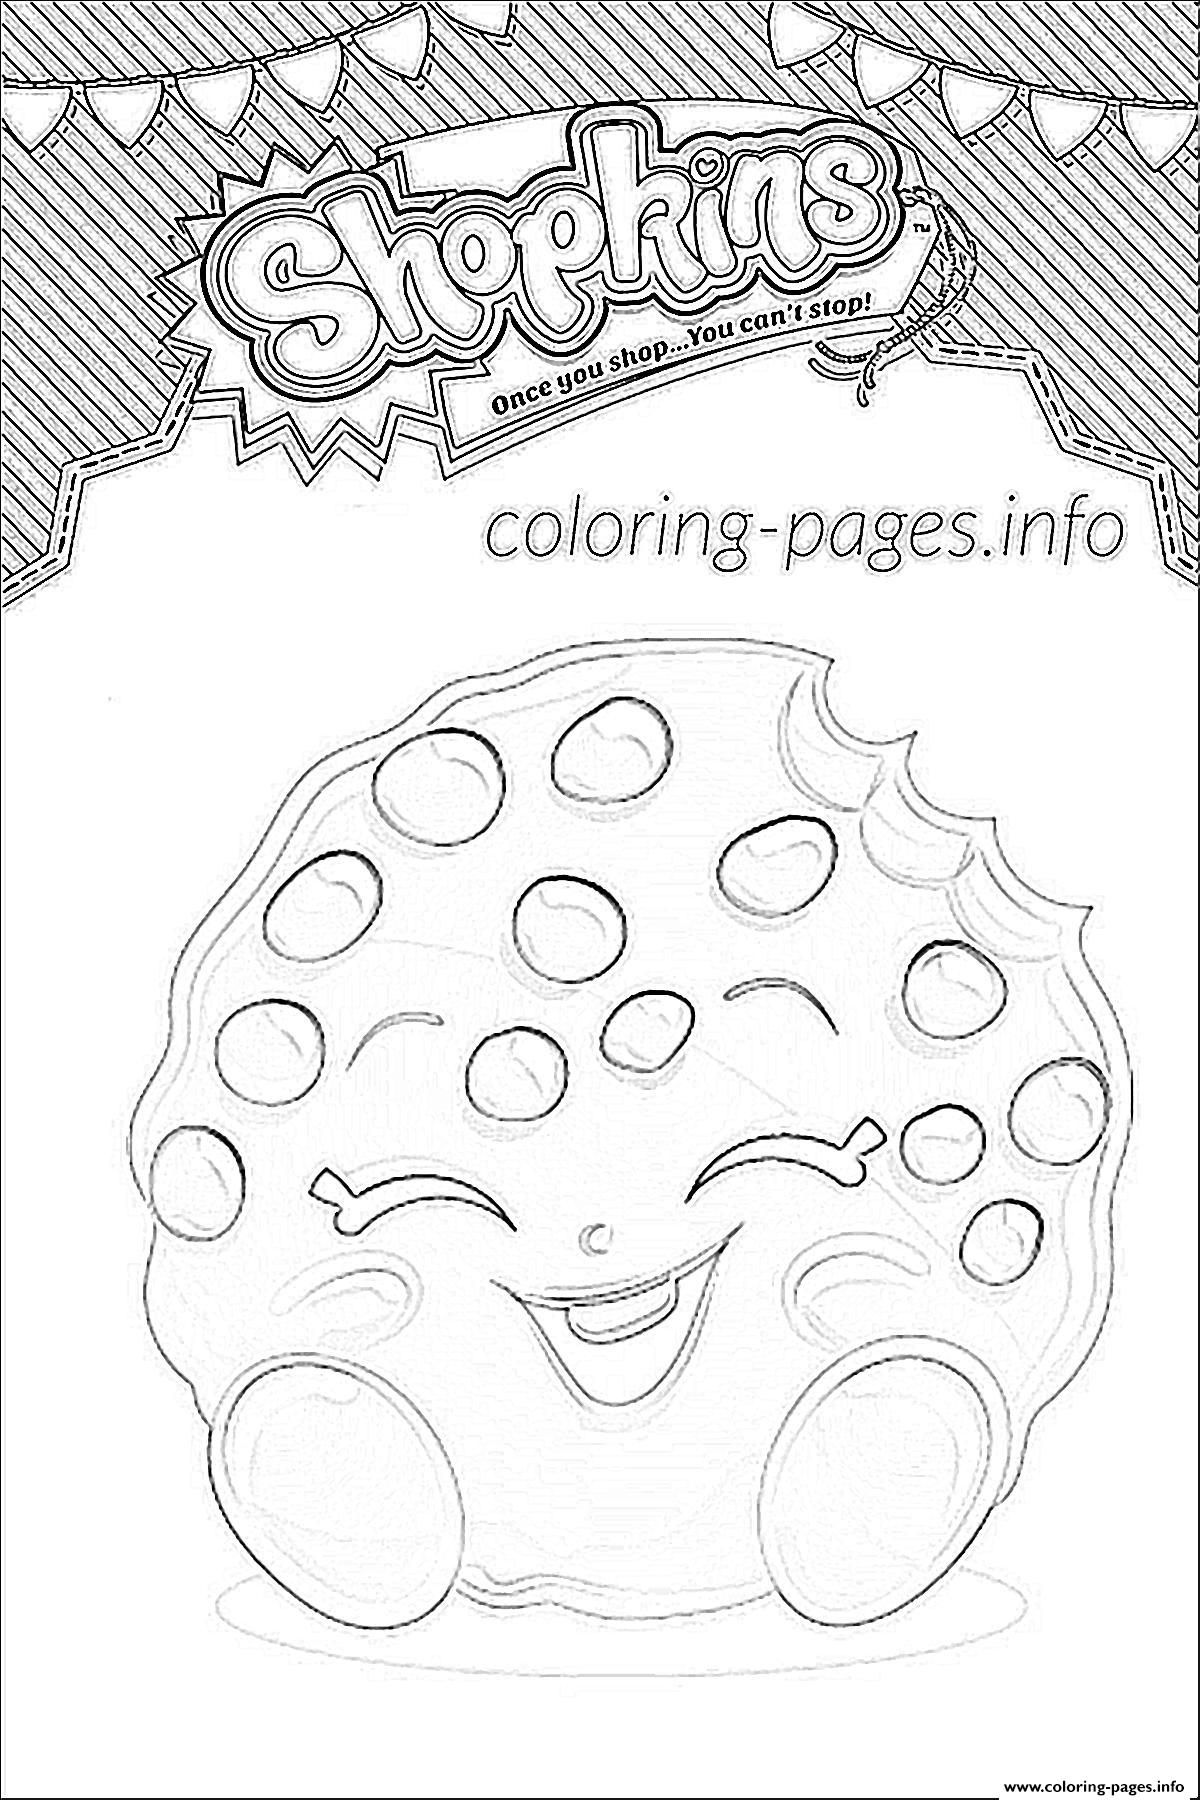 Print Shopkins Kooky Cookie Shoppies Coloring Pages Coloring